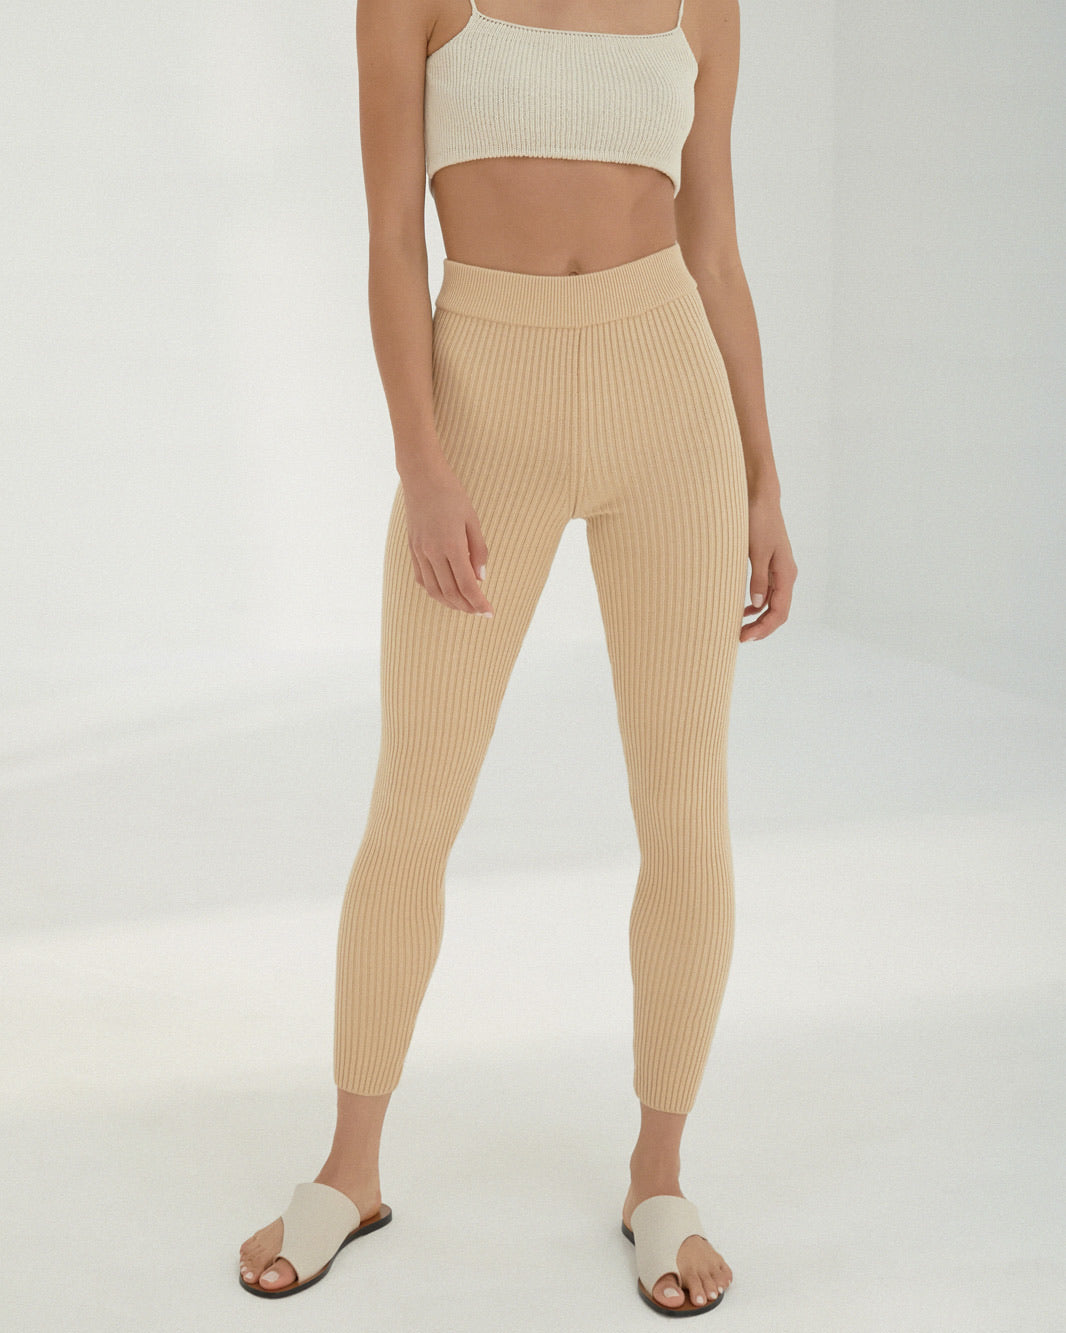 ribbed legging in wheat.